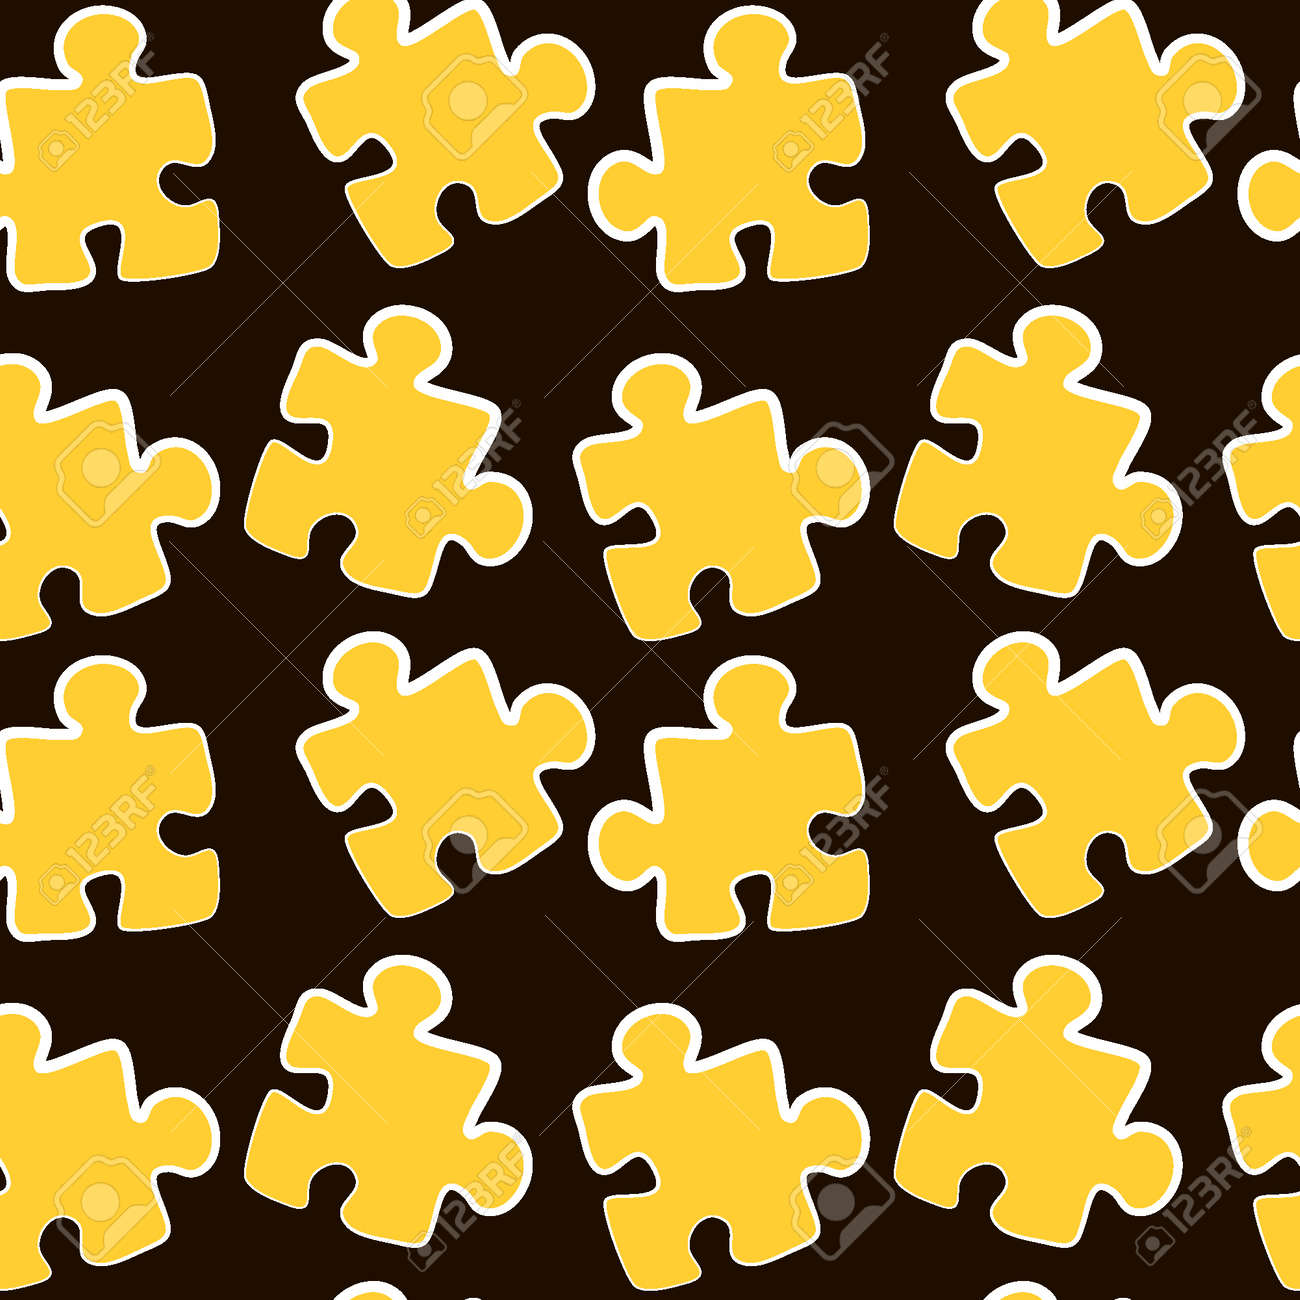 Illustration - Seamless texture, pattern - puzzles. Minimalism, pastiche. Background for a website or blog, wallpaper, textiles or packaging. - 170610130